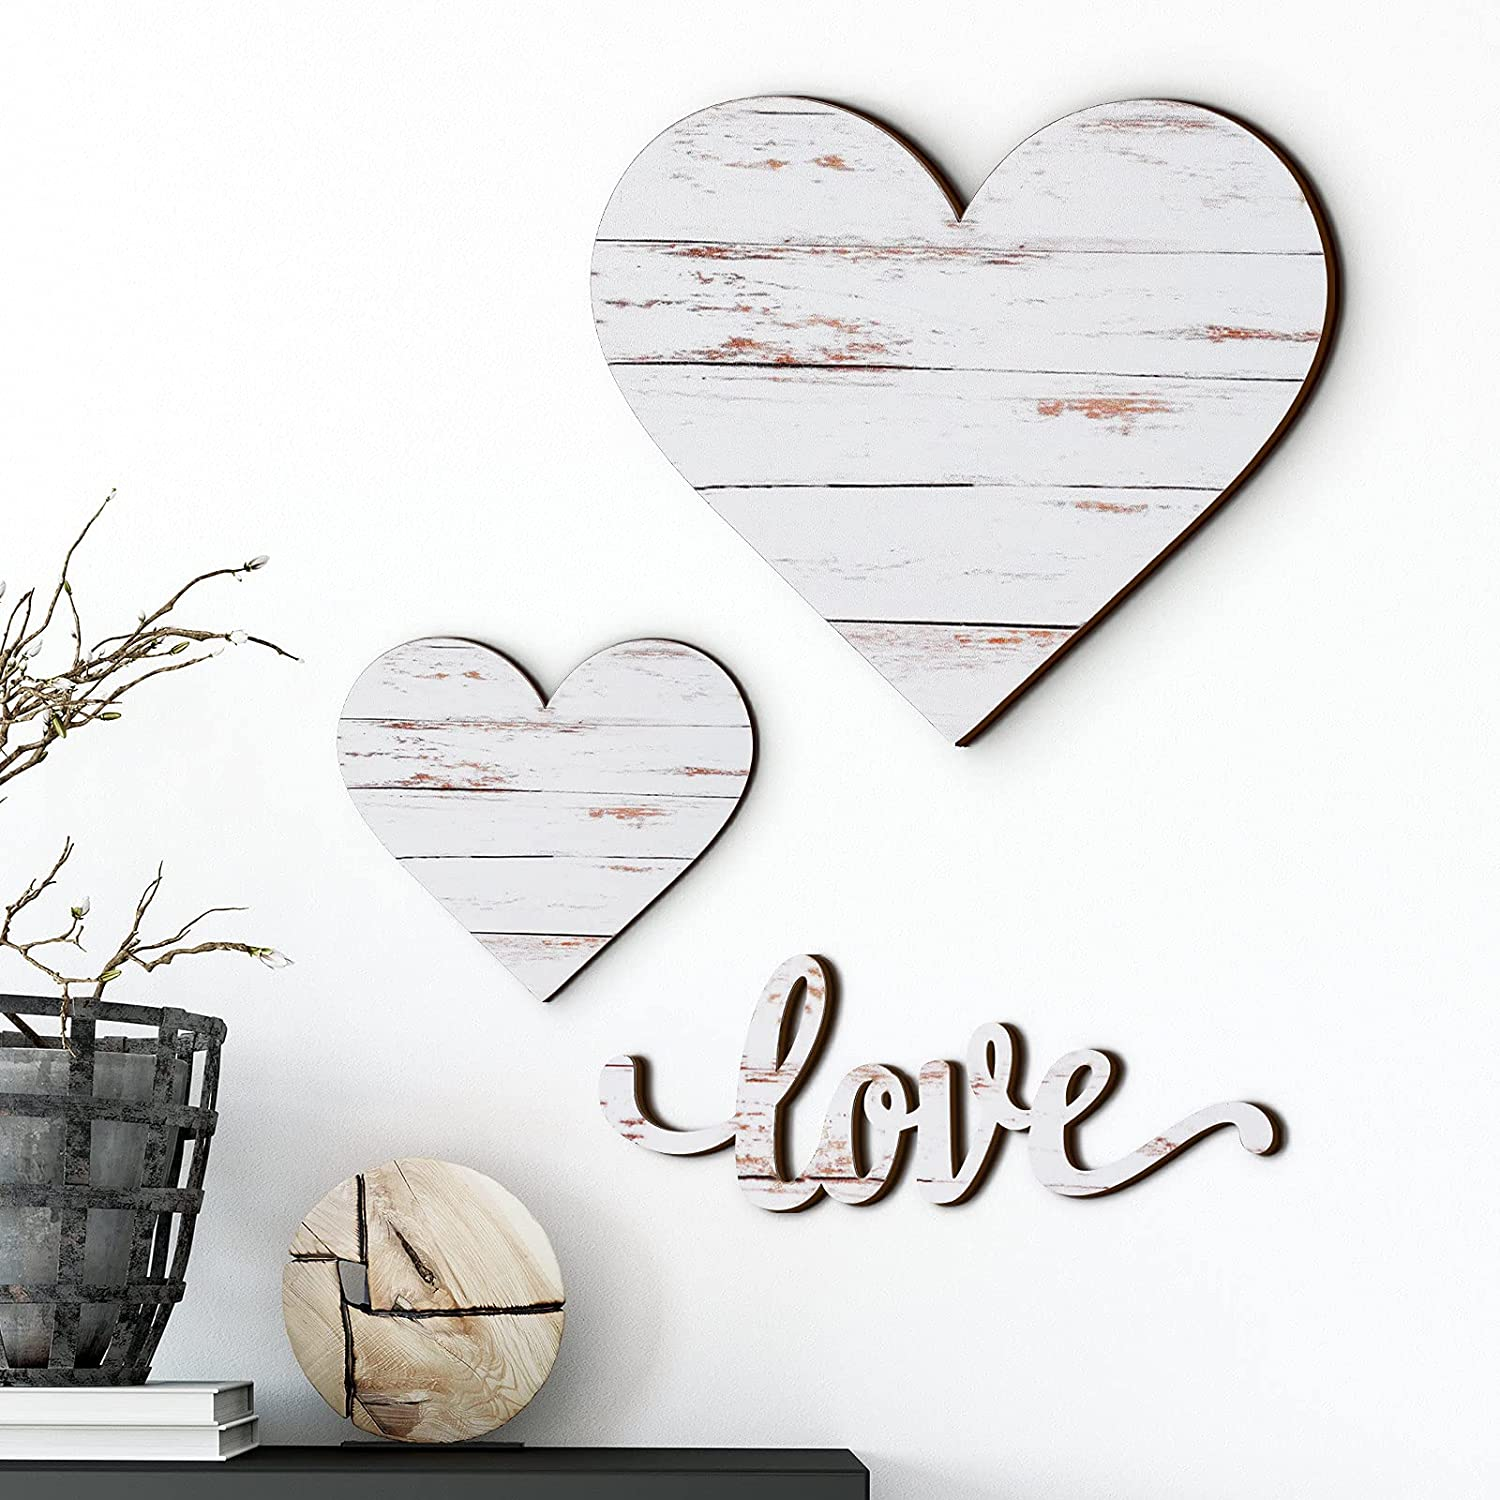 Chitidr 3 Pieces Heart Shaped Wood Sign Heart-Shaped Wooden Wall Sign Wood Heart Wall Decor Rustic Hanging Sign Wooden Heart Plaque for Home Farmhouse Living Room Bedroom (White)